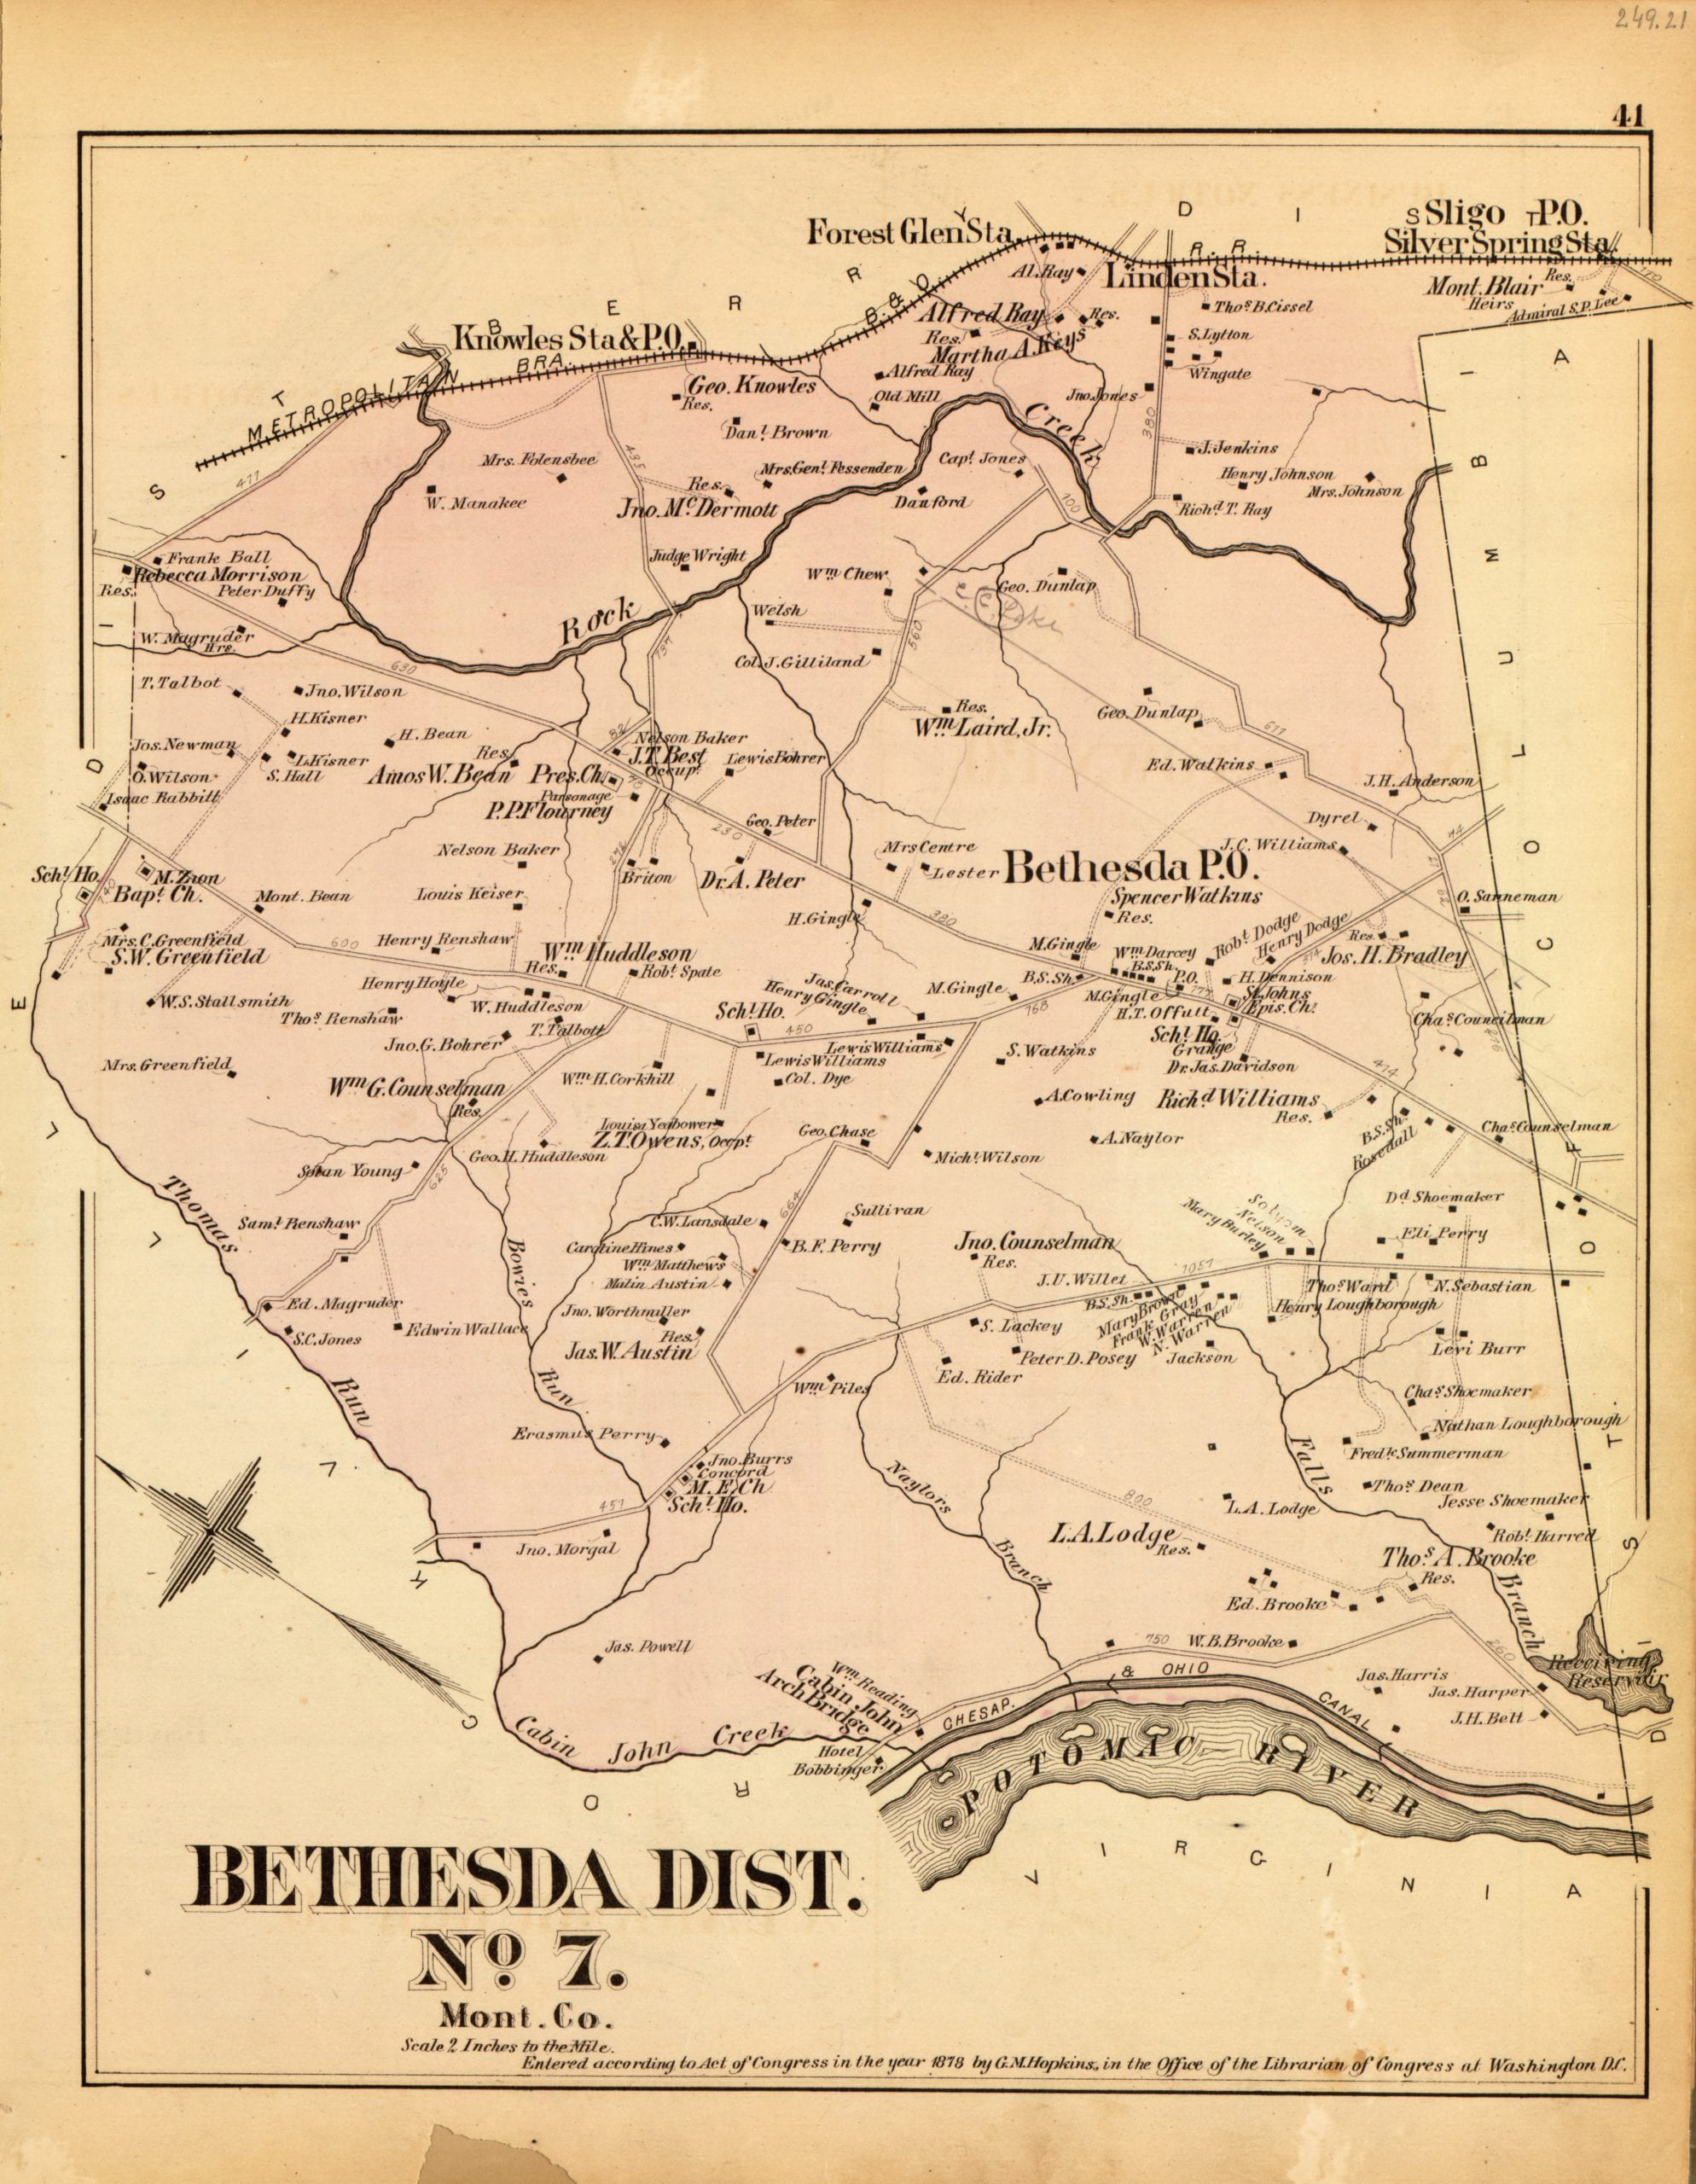 Map of Bethesda District in 1878